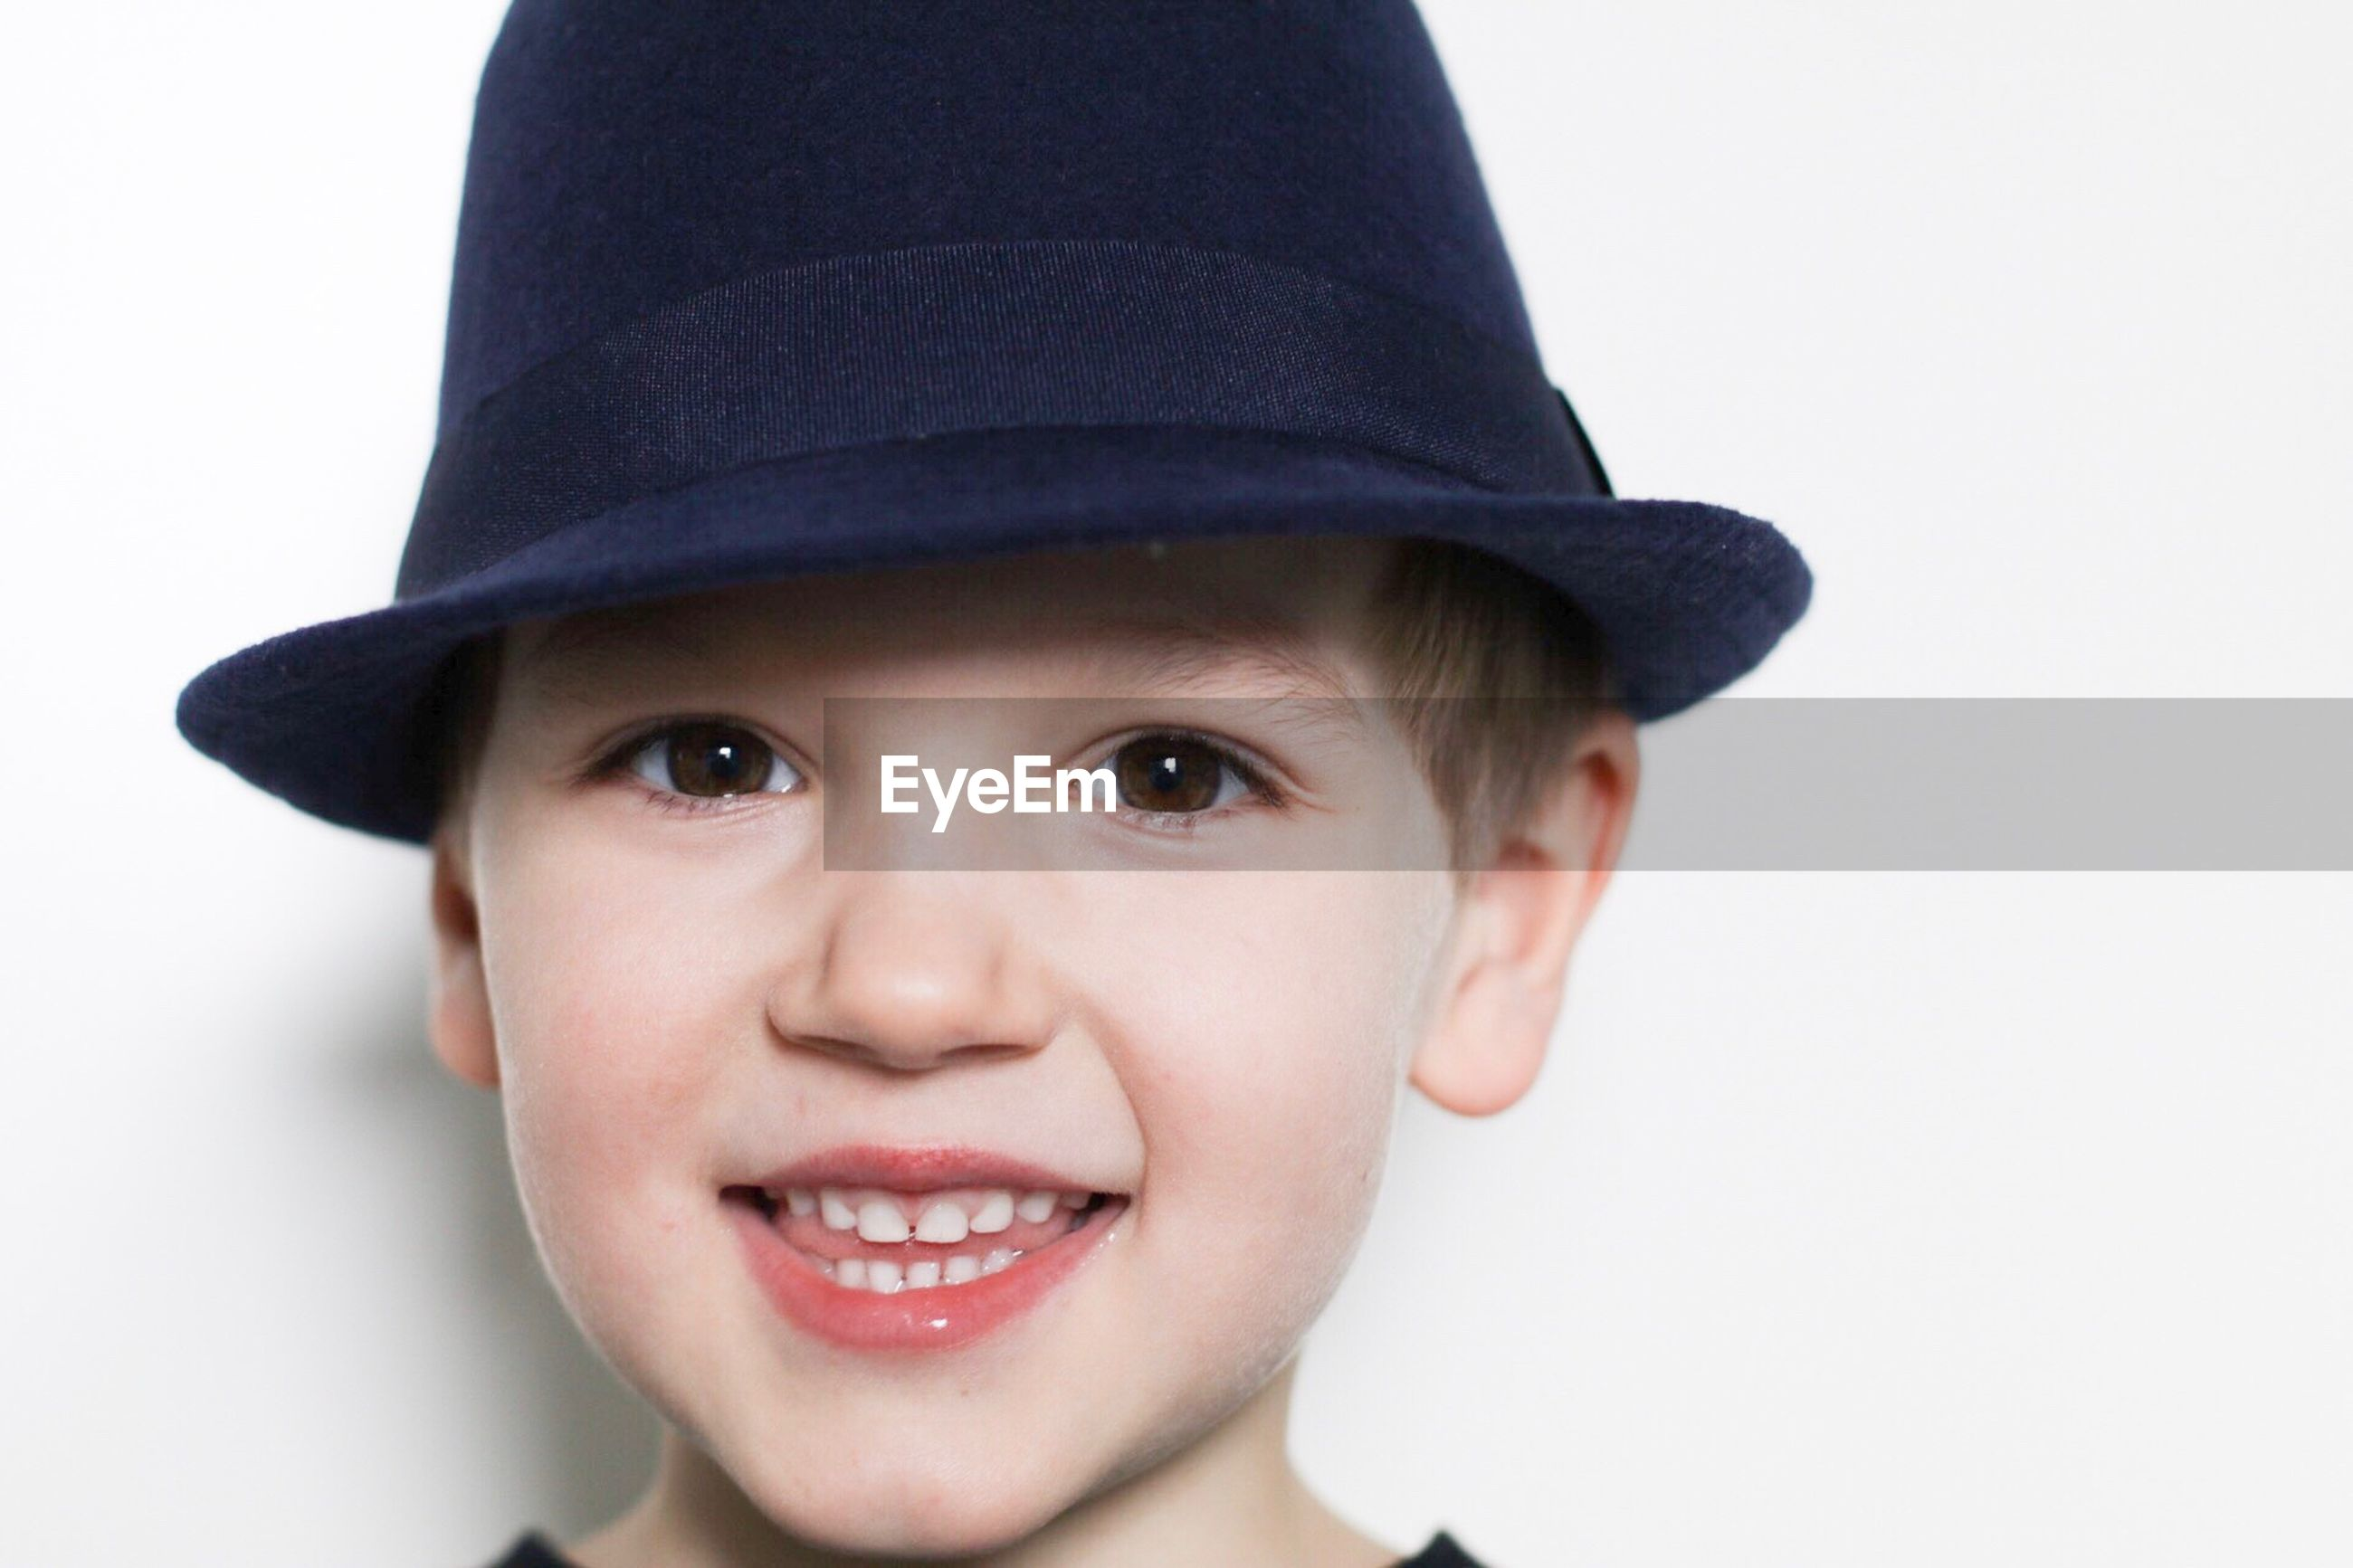 Close-up portrait of smiling boy wearing hat against white wall